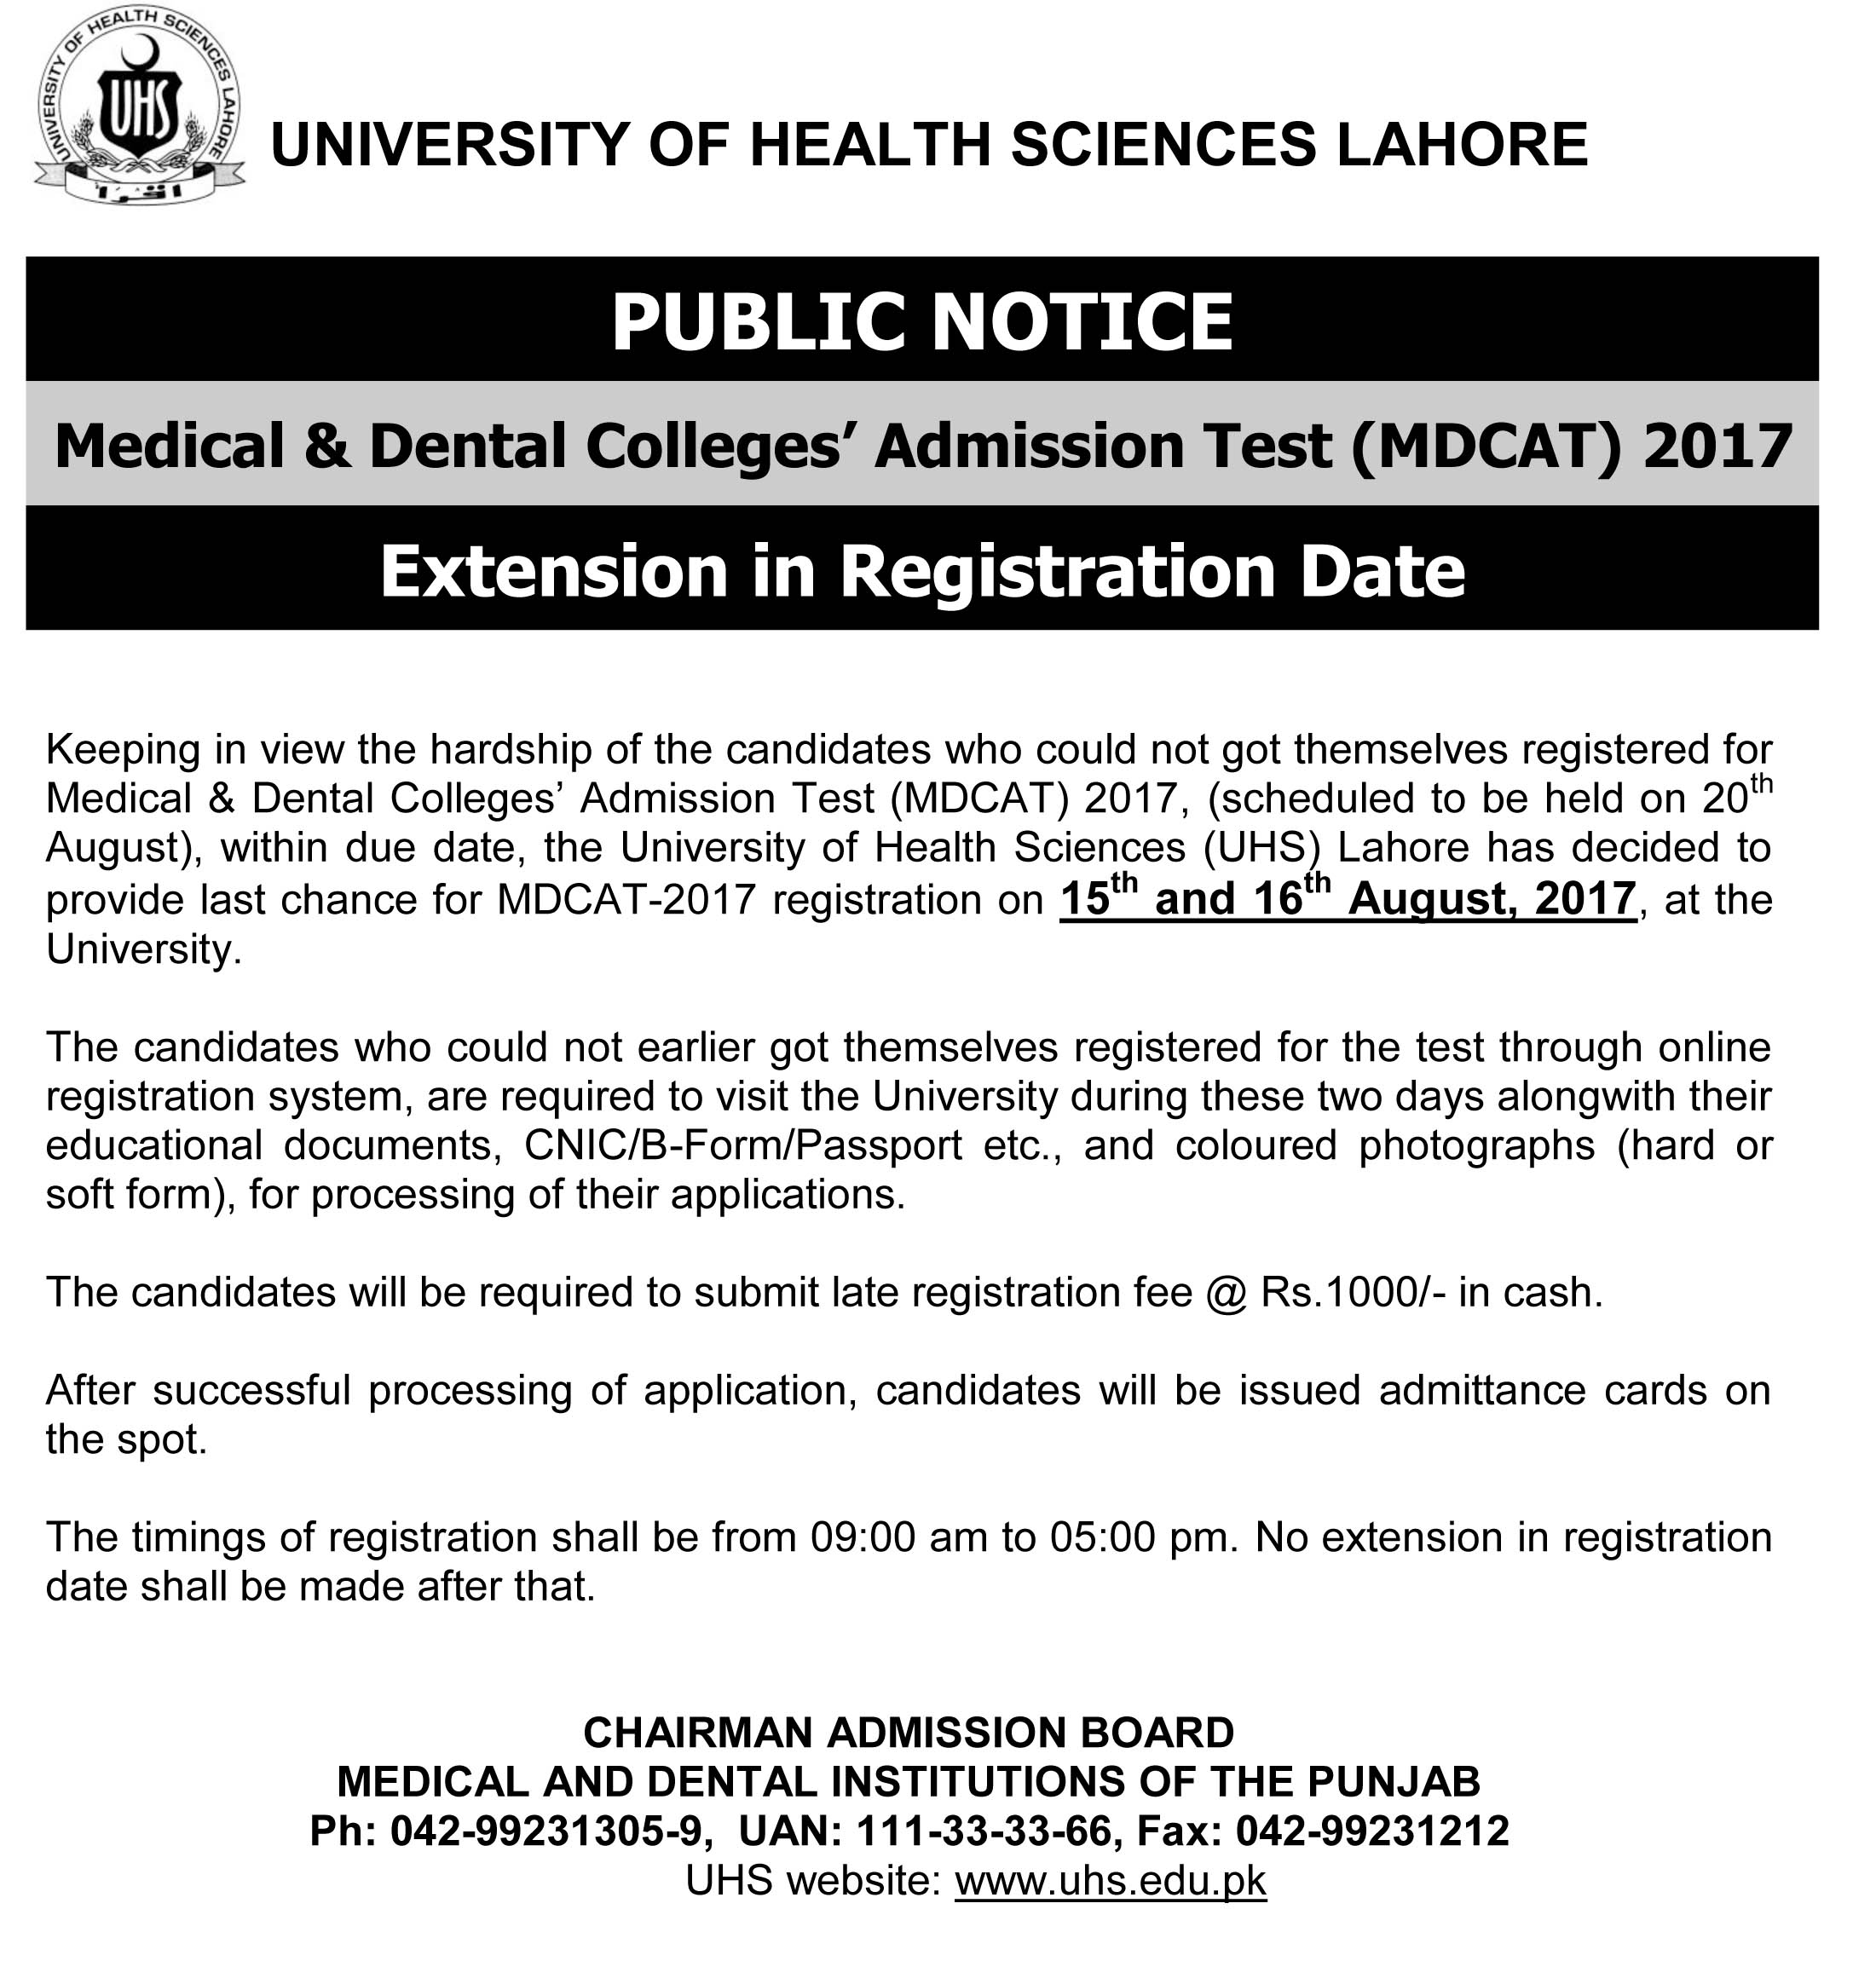 Extention Notice of MDCAT REGISTRATION